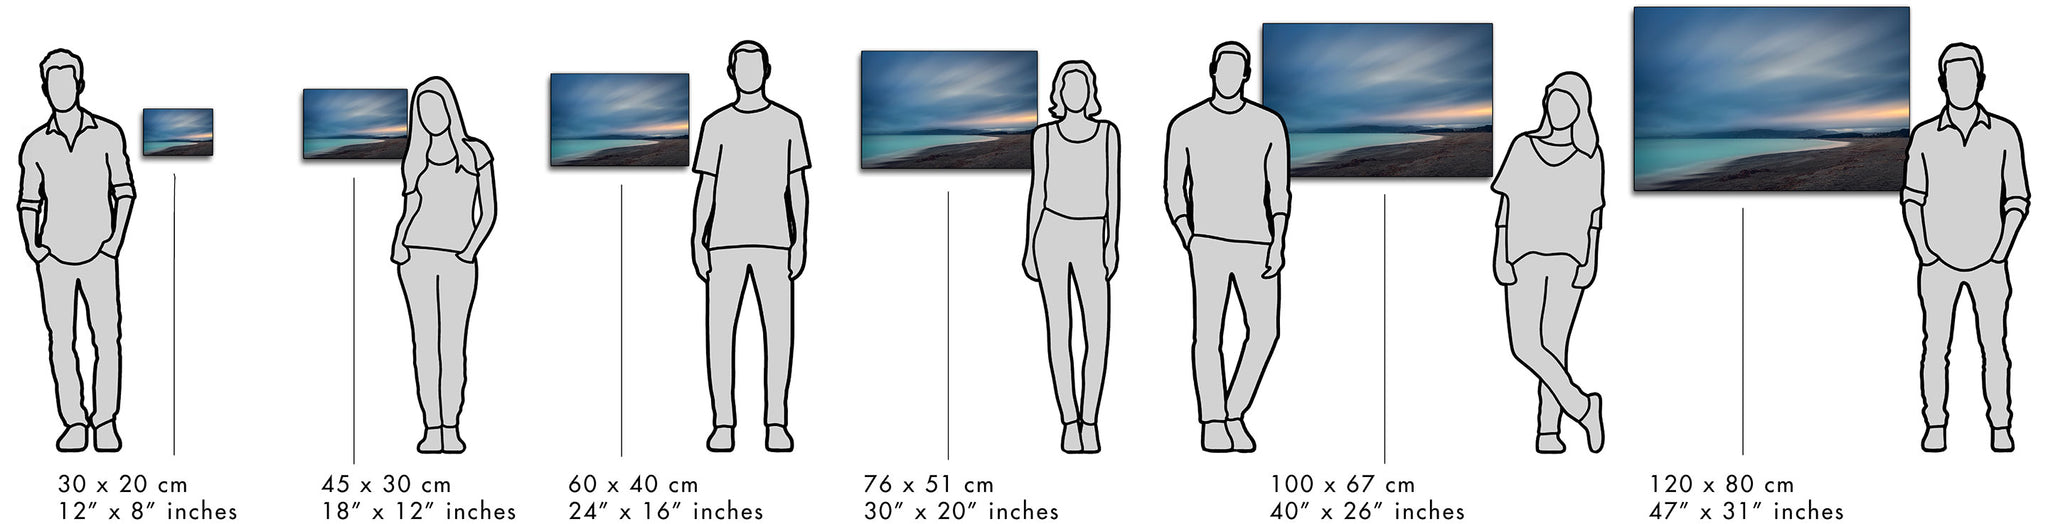 Visual guide to demonstrate the size of the prints in comparison to the size of people